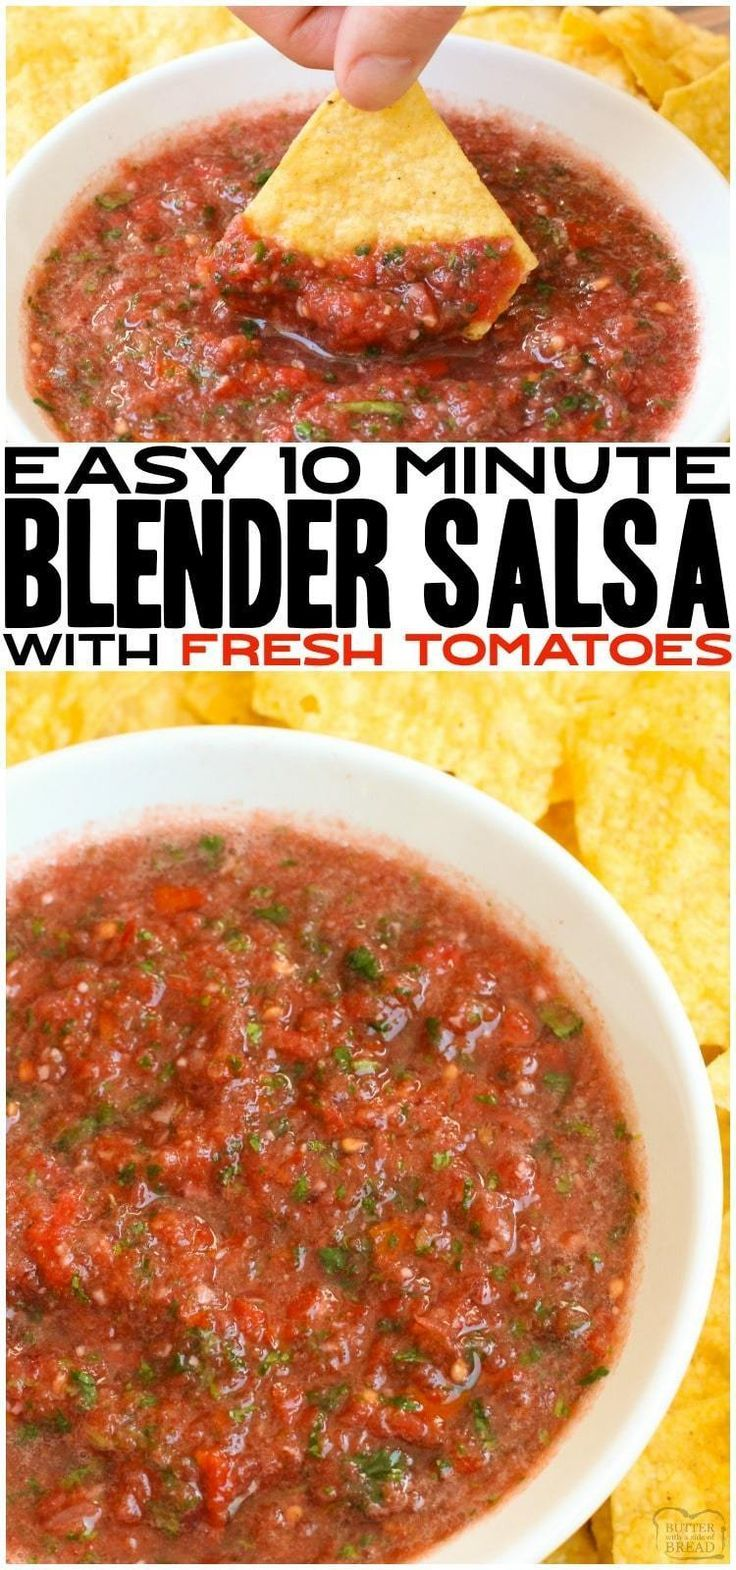 EASY BLENDER SALSA - Butter with a Side of Bread